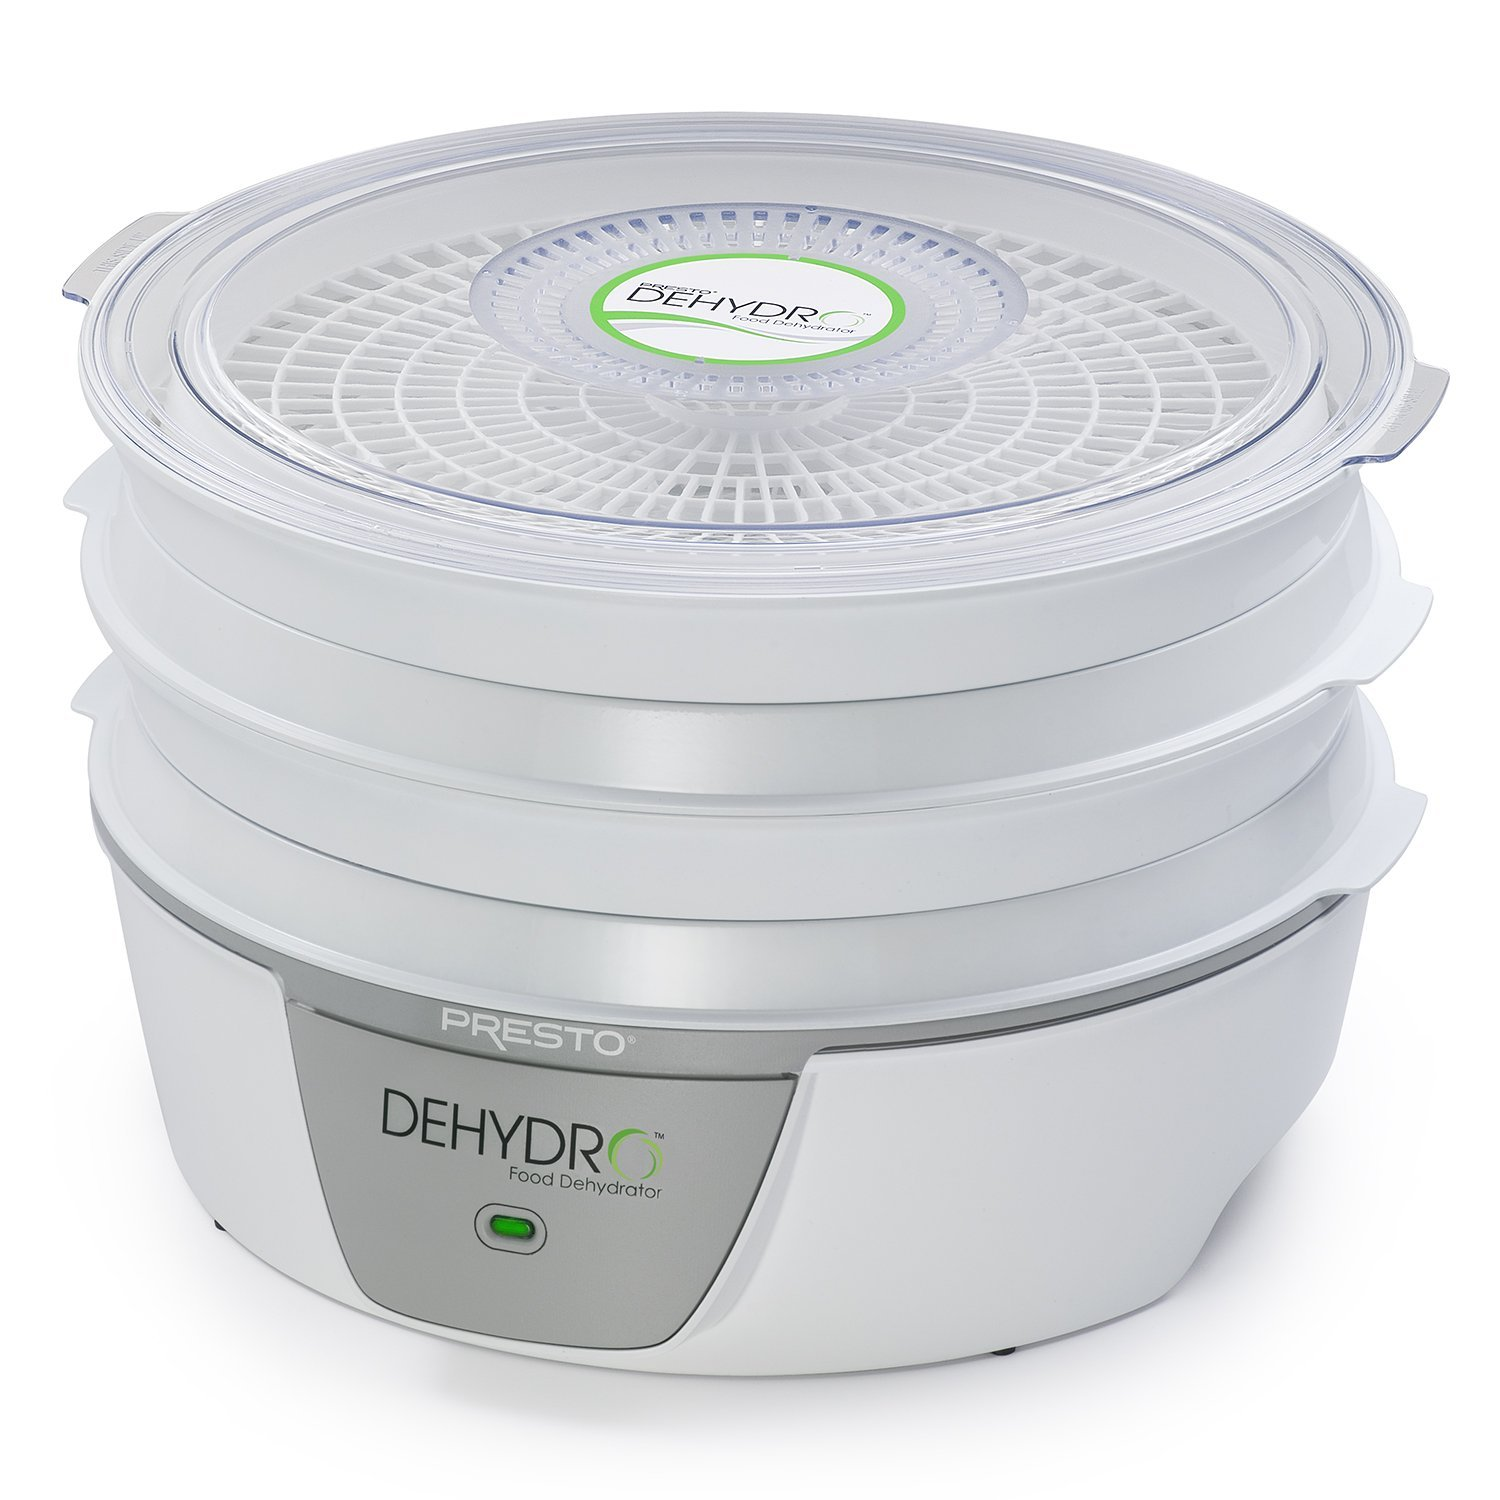 Presto® Dehydro™ Electric Food Dehydrator